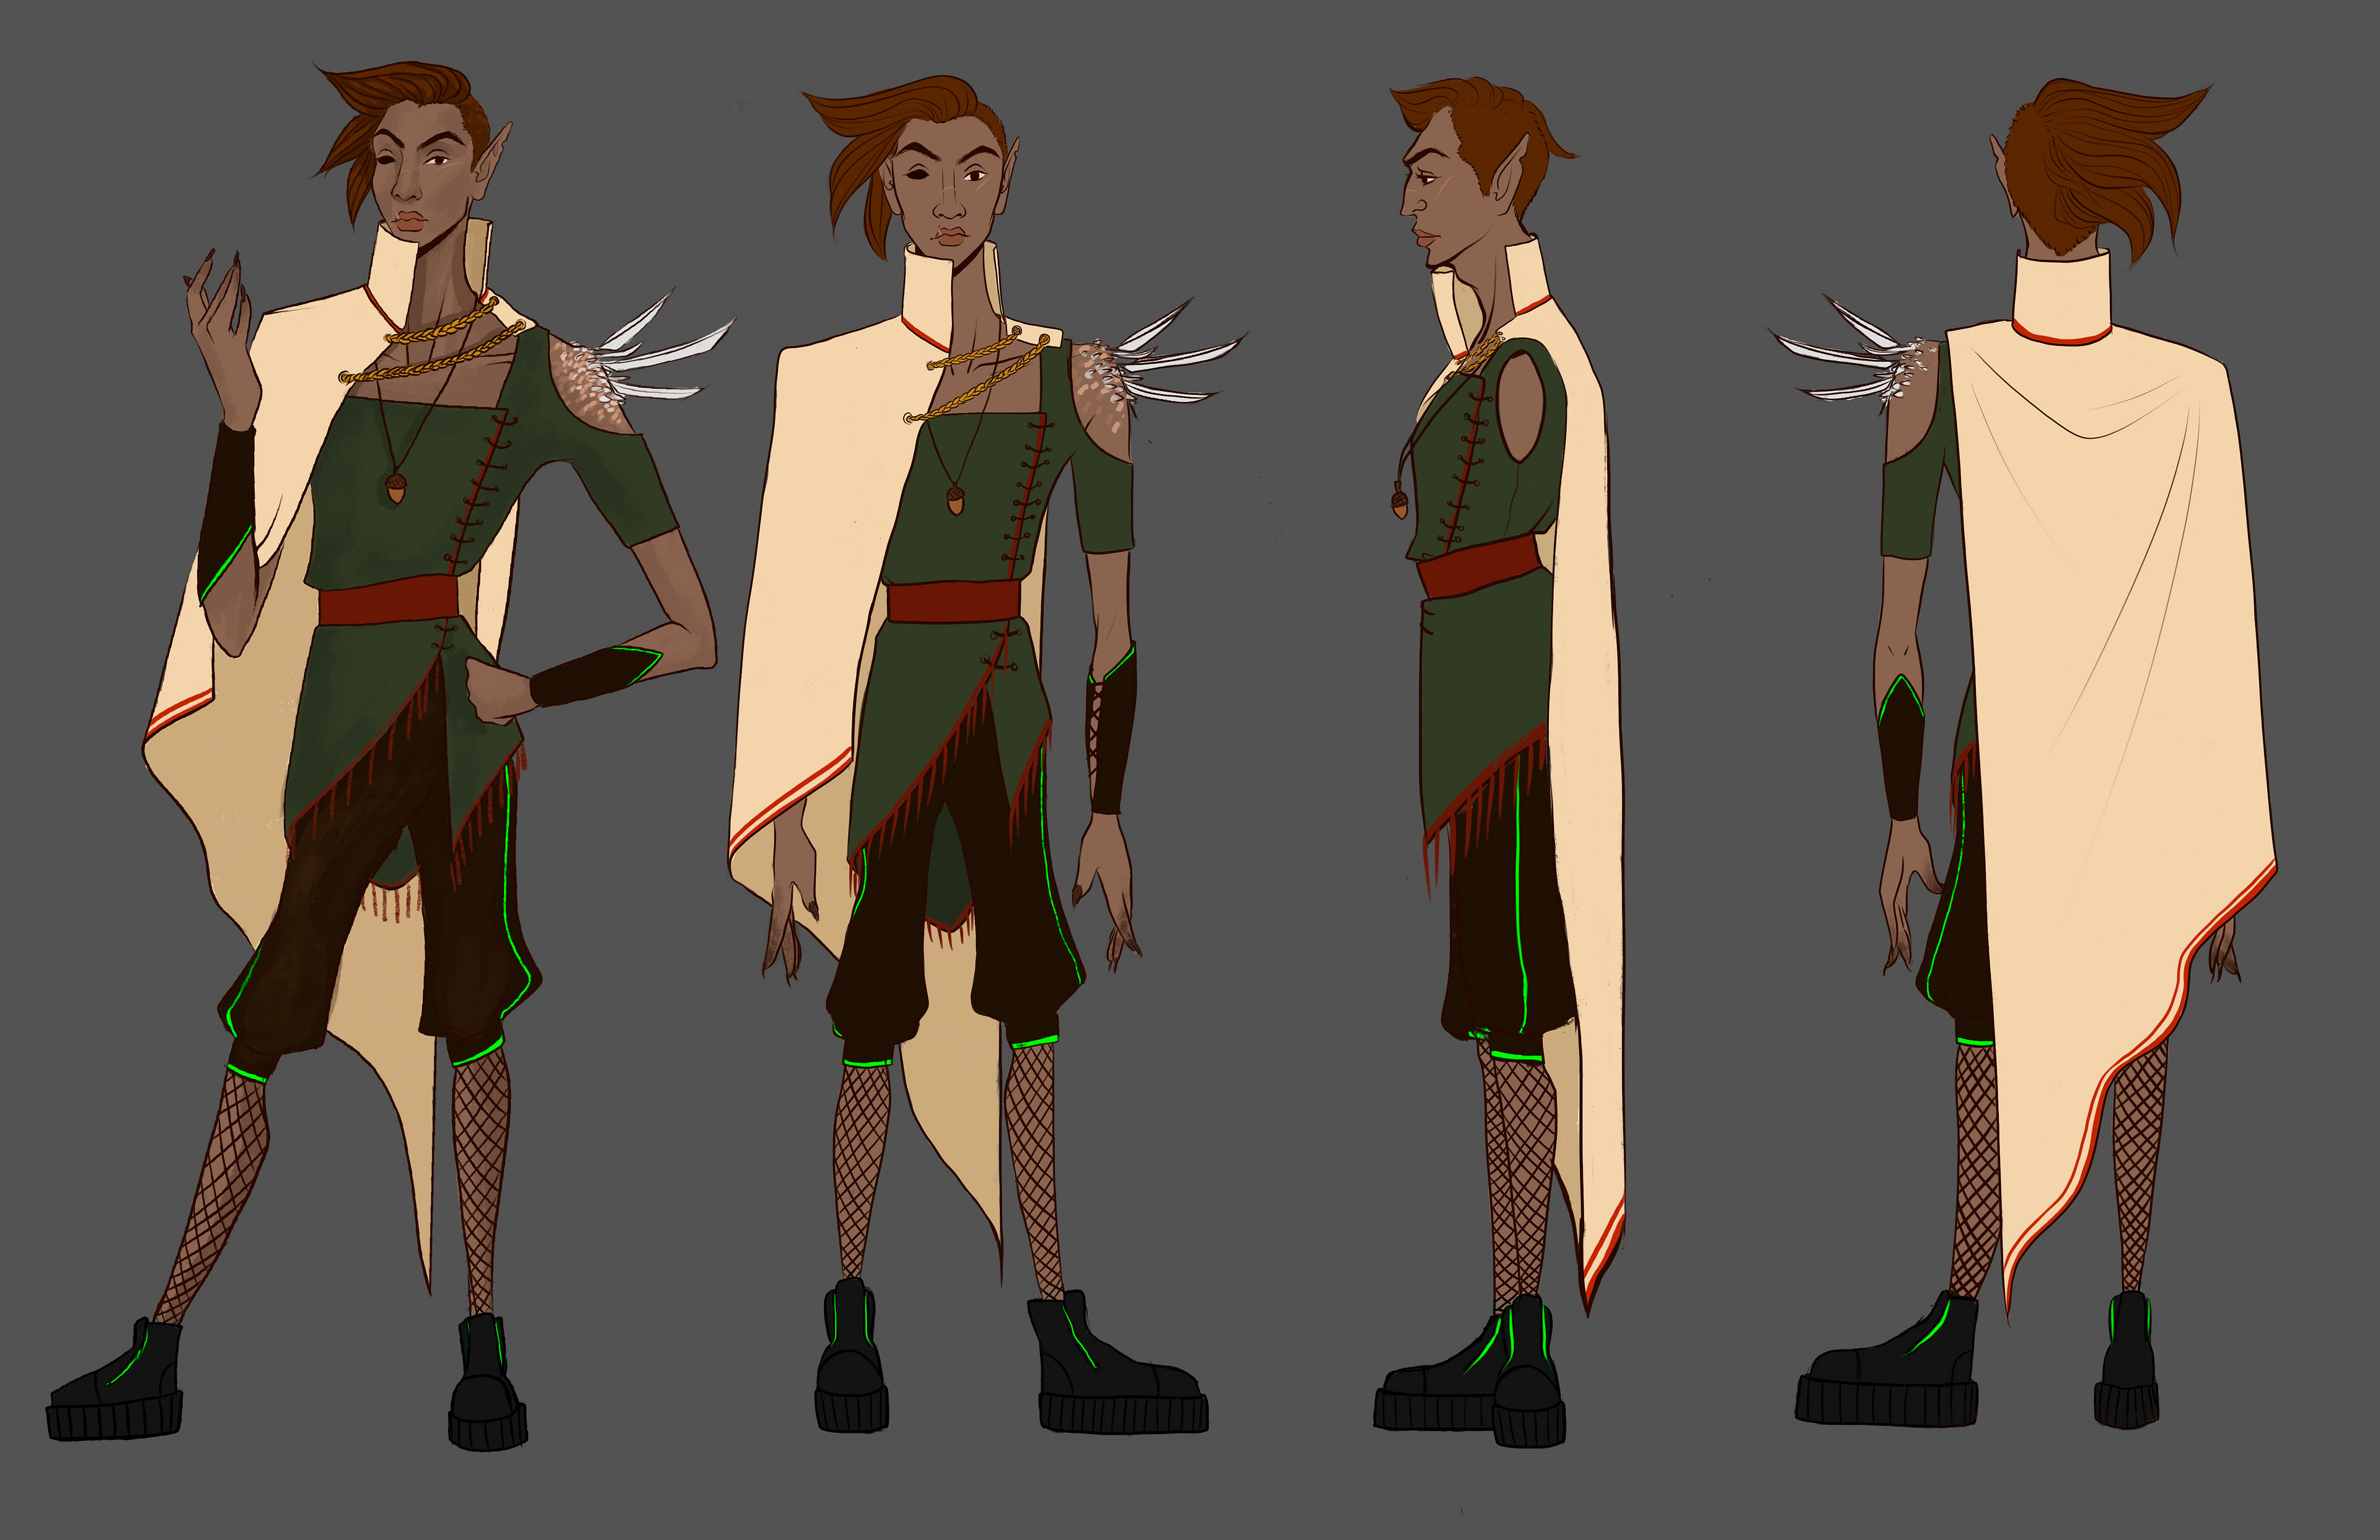 Peter Pan Turnaround